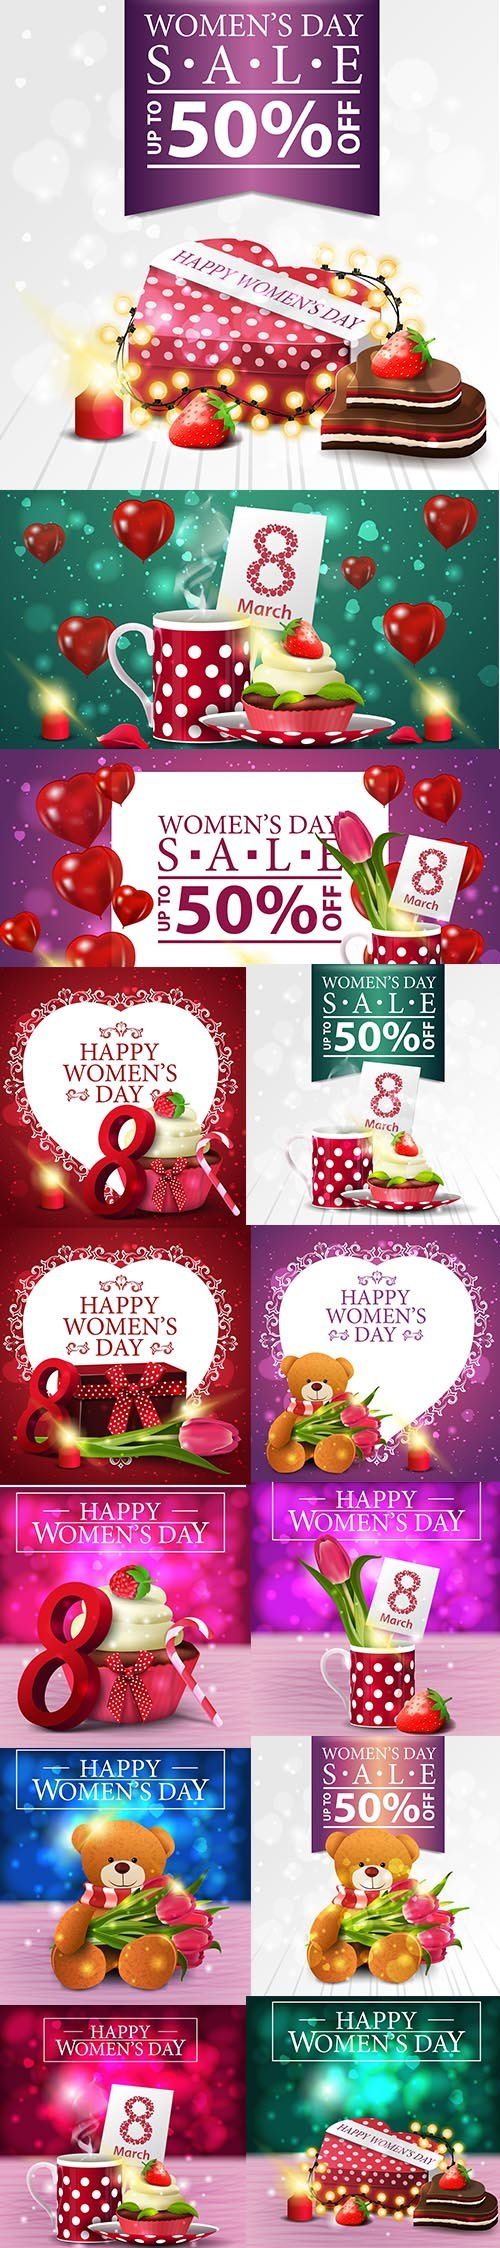 Set of Womens Day Sale Illustrations